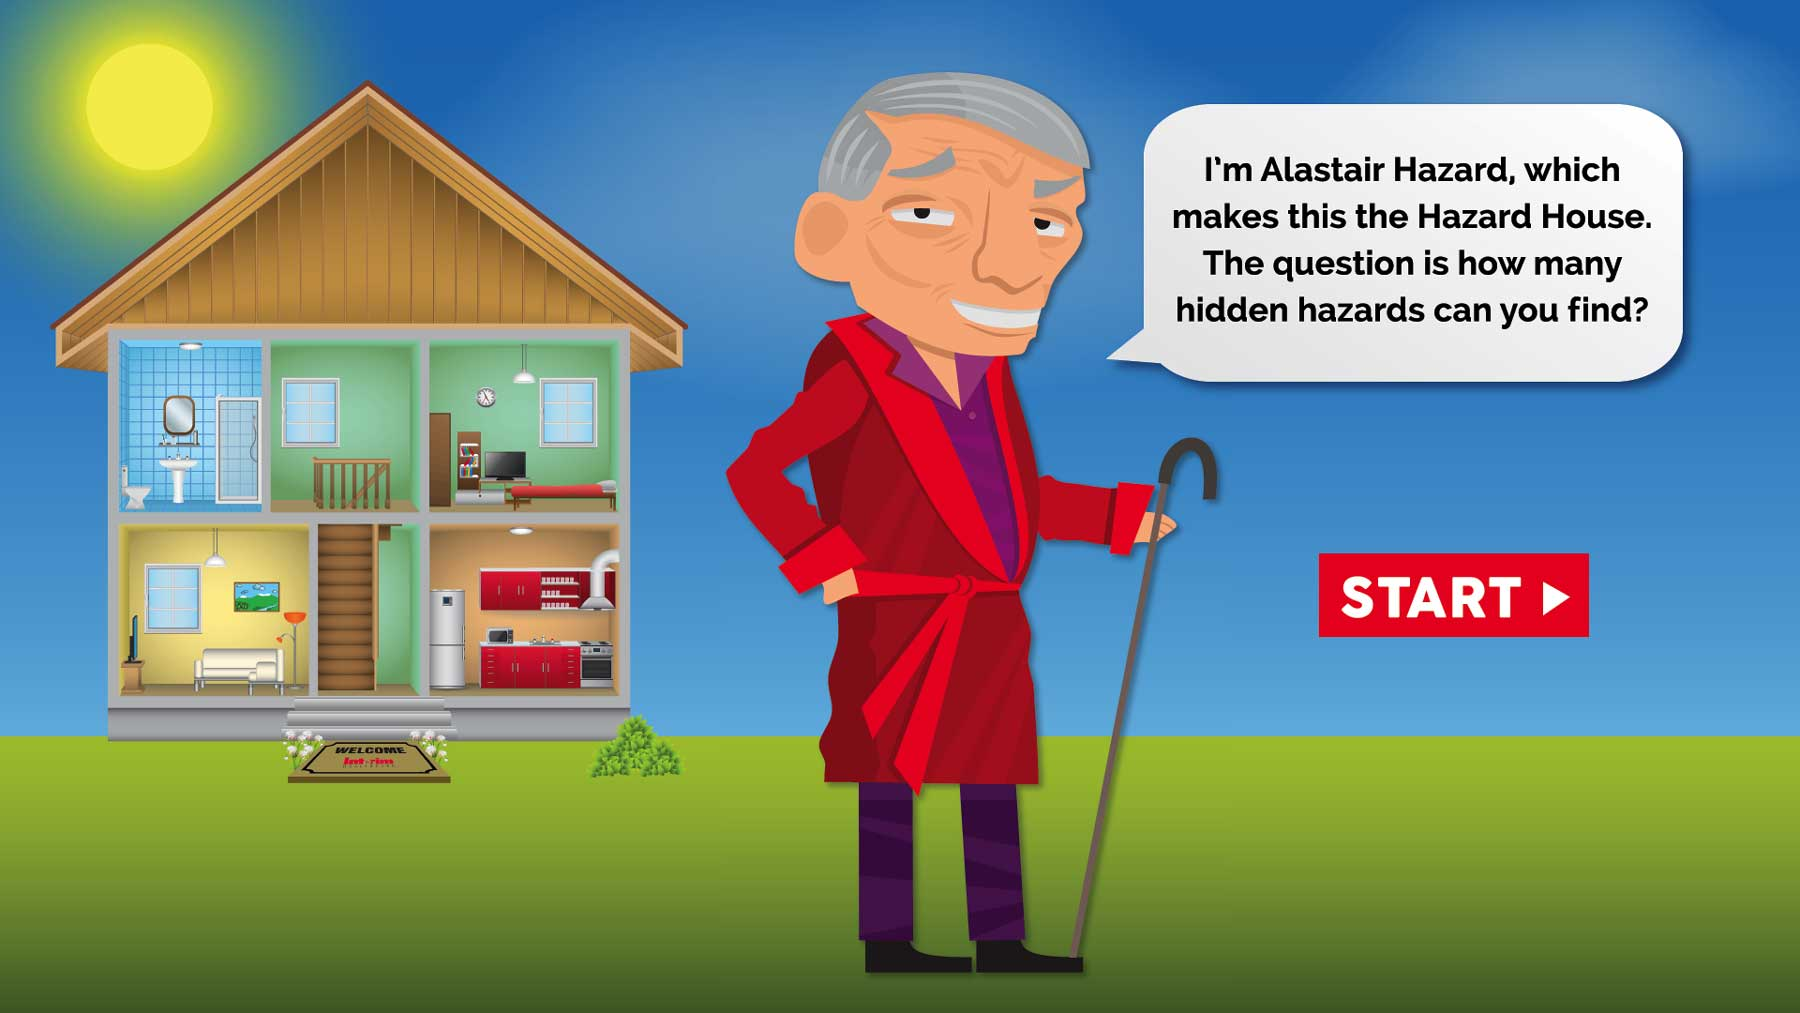 I'm Alastair Hazard, which makes this the Hazard House.  The question is how many hidden hazards can you find? Click to start the hidden hazards game